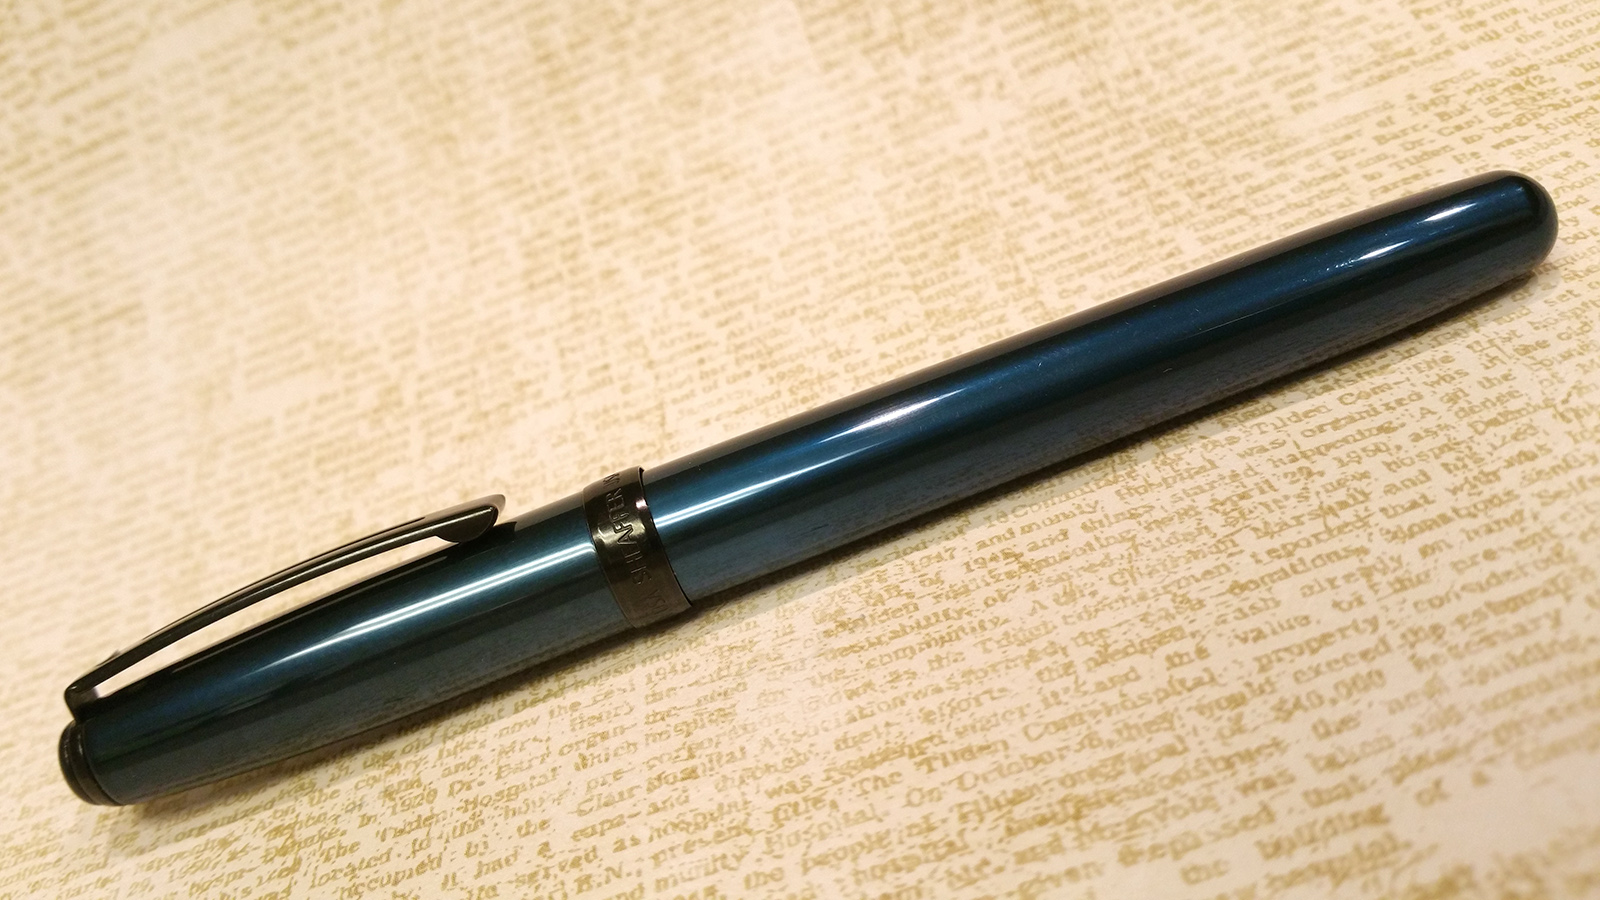 Sheaffer Prelude 380 Fountain Pen in metallic blue